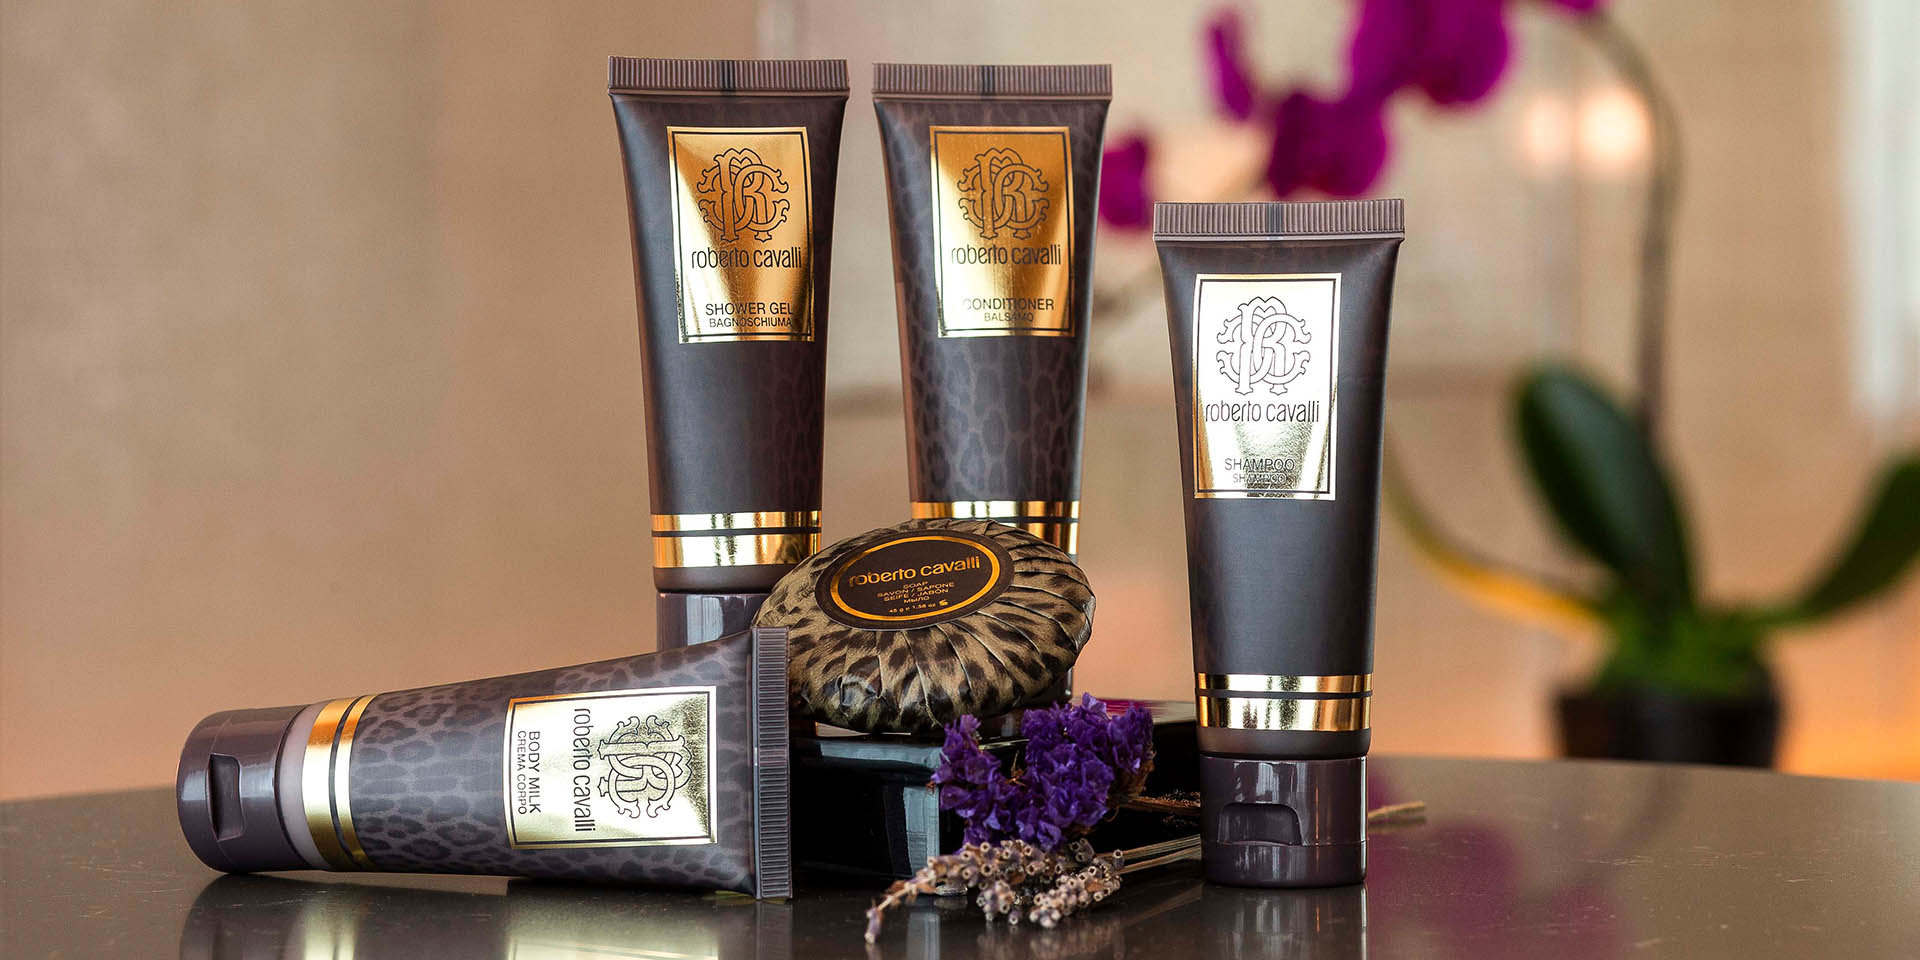 Luxury bathroom amenities from Roberto Cavalli